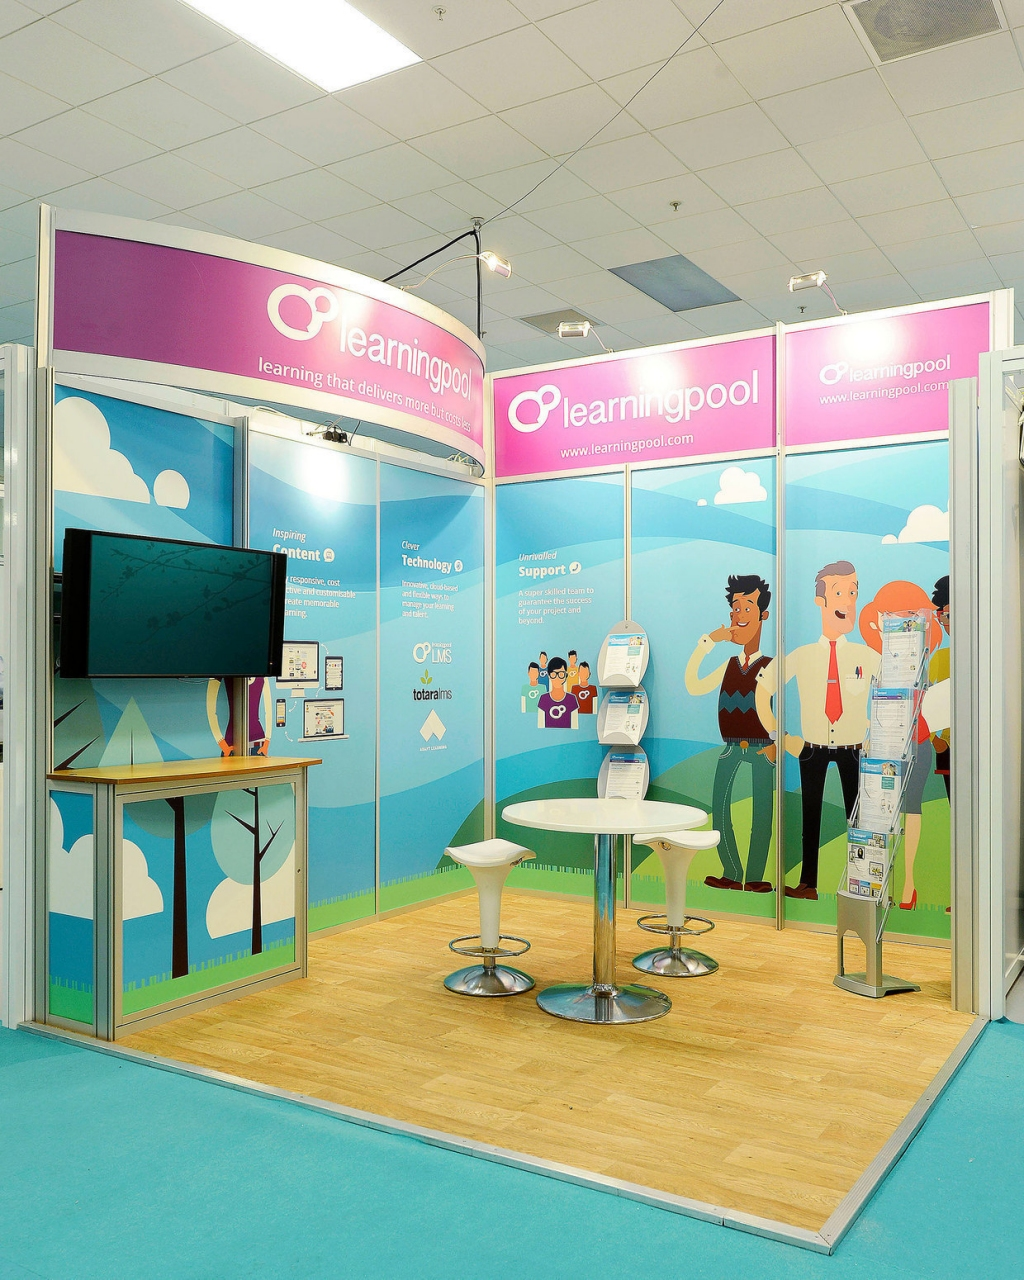 Exhibition Stand Builders Swindon : Fully adaptable modular exhibition stands swindon